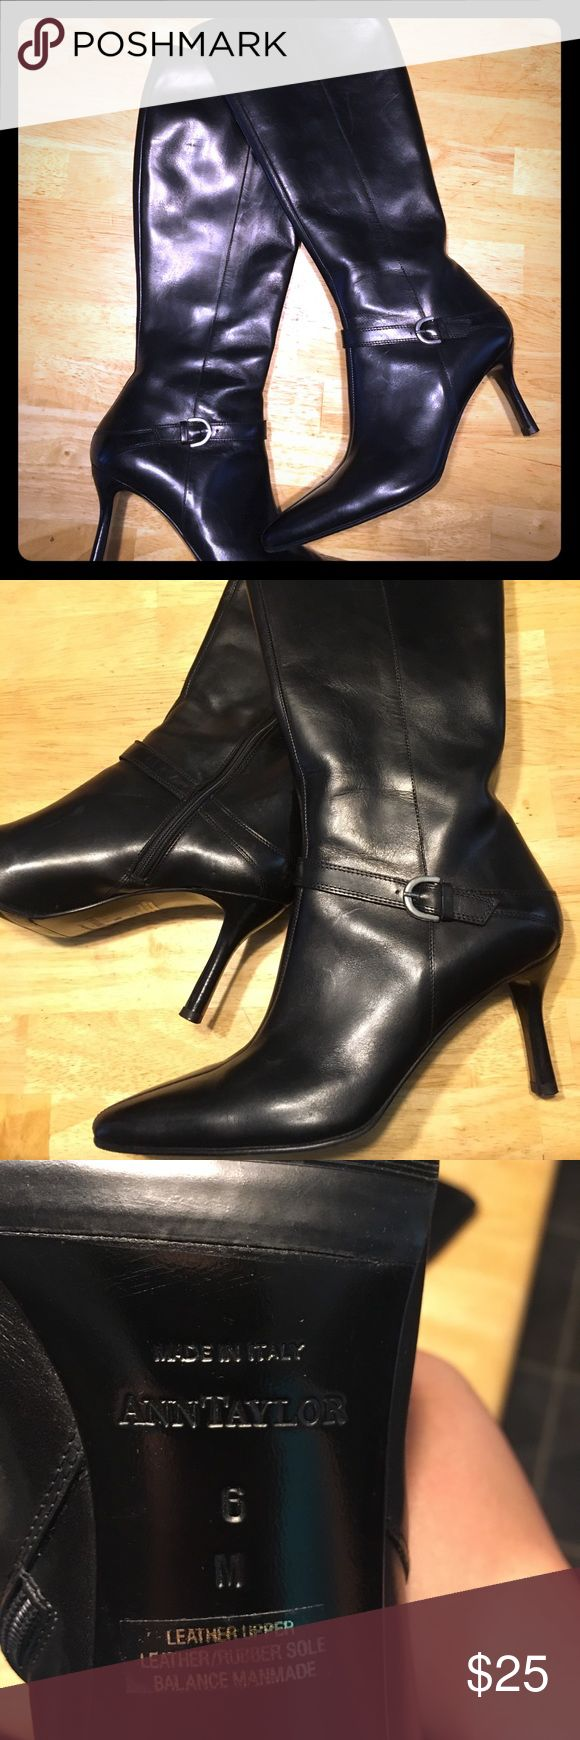 Ann Taylor black leather spike heel boots, EUC Excellent used condition, Ann Taylor spike heeled boots, size 6 women's. Minor signs of wear, only worn inside twice. Add these to your shoe collection for a fraction of retail cost! Ann Taylor Shoes Heeled Boots